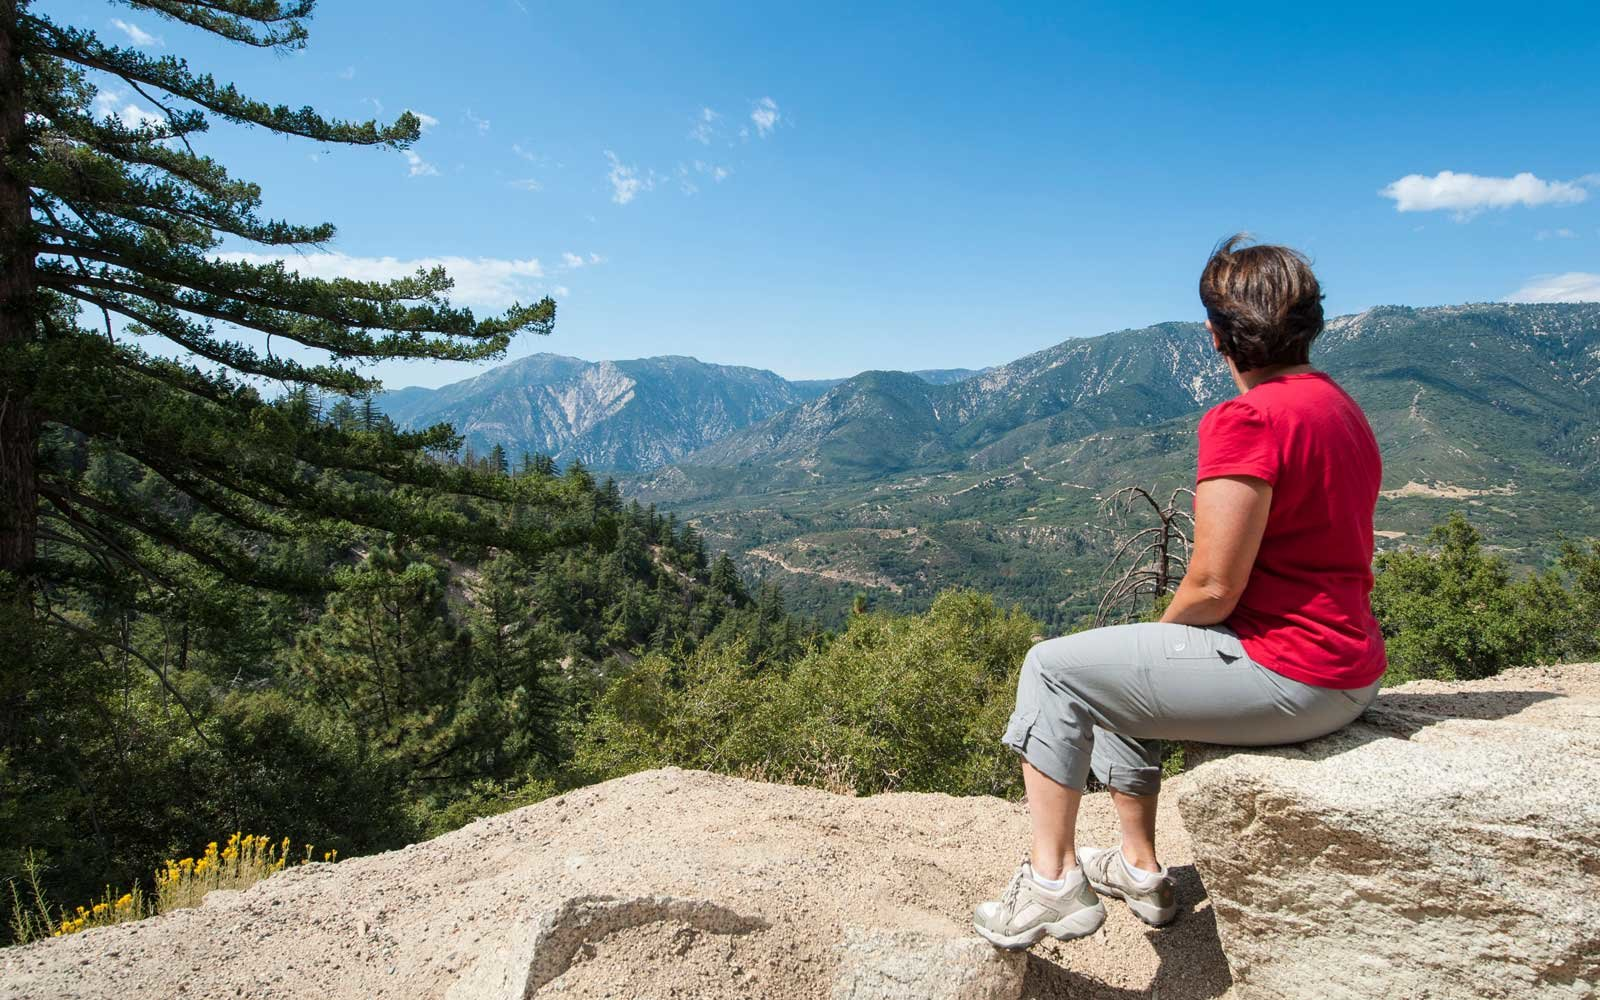 Important things to know for your trip to Big Bear